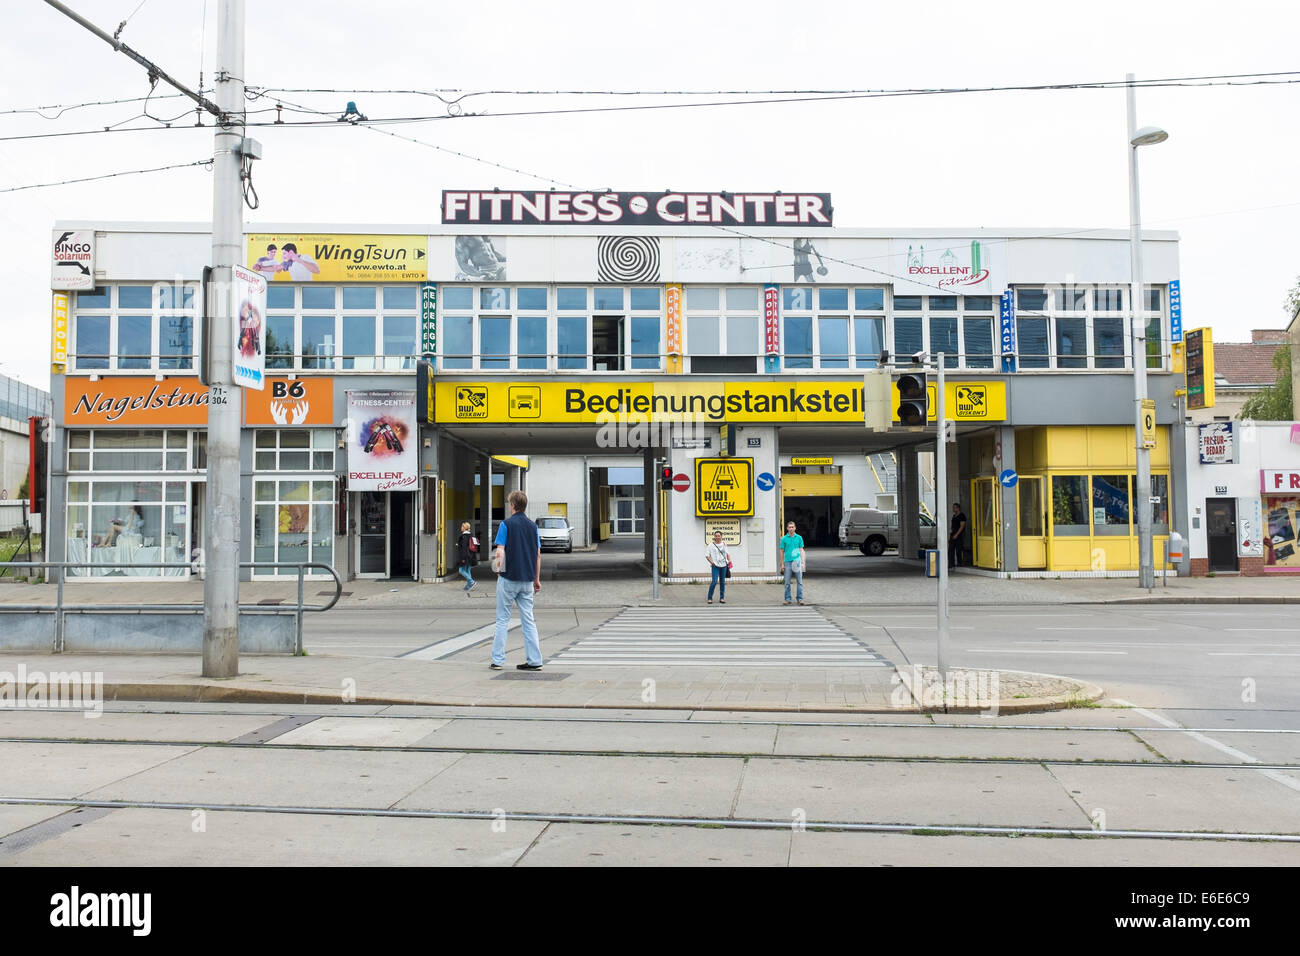 Fitness center in Simmering, Viena - Stock Image